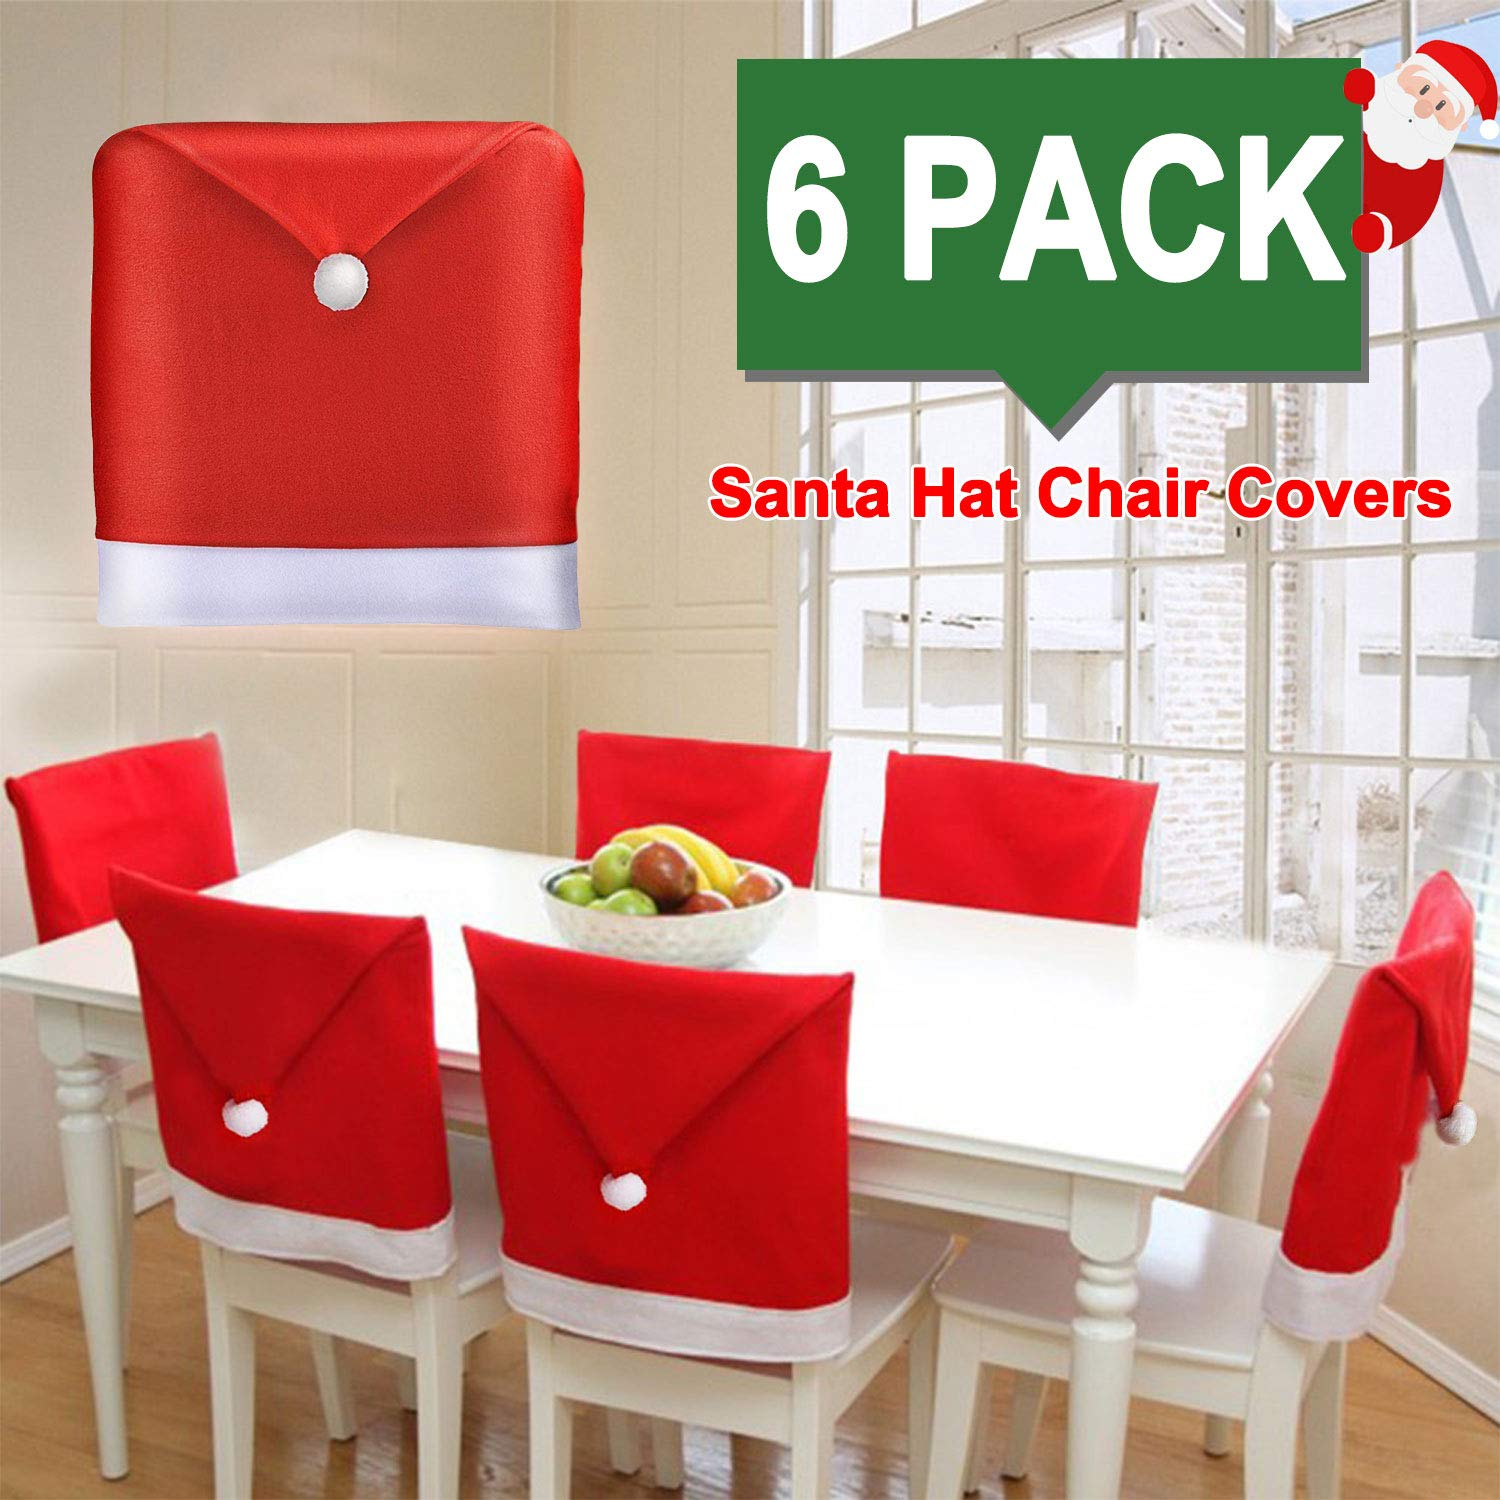 Christmas Chair Covers Santa Hat Chair Back Covers Xams Chair Covers Caps  Slipcovers Set for Christmas Festive Home Dinner Table Chairs Decoration